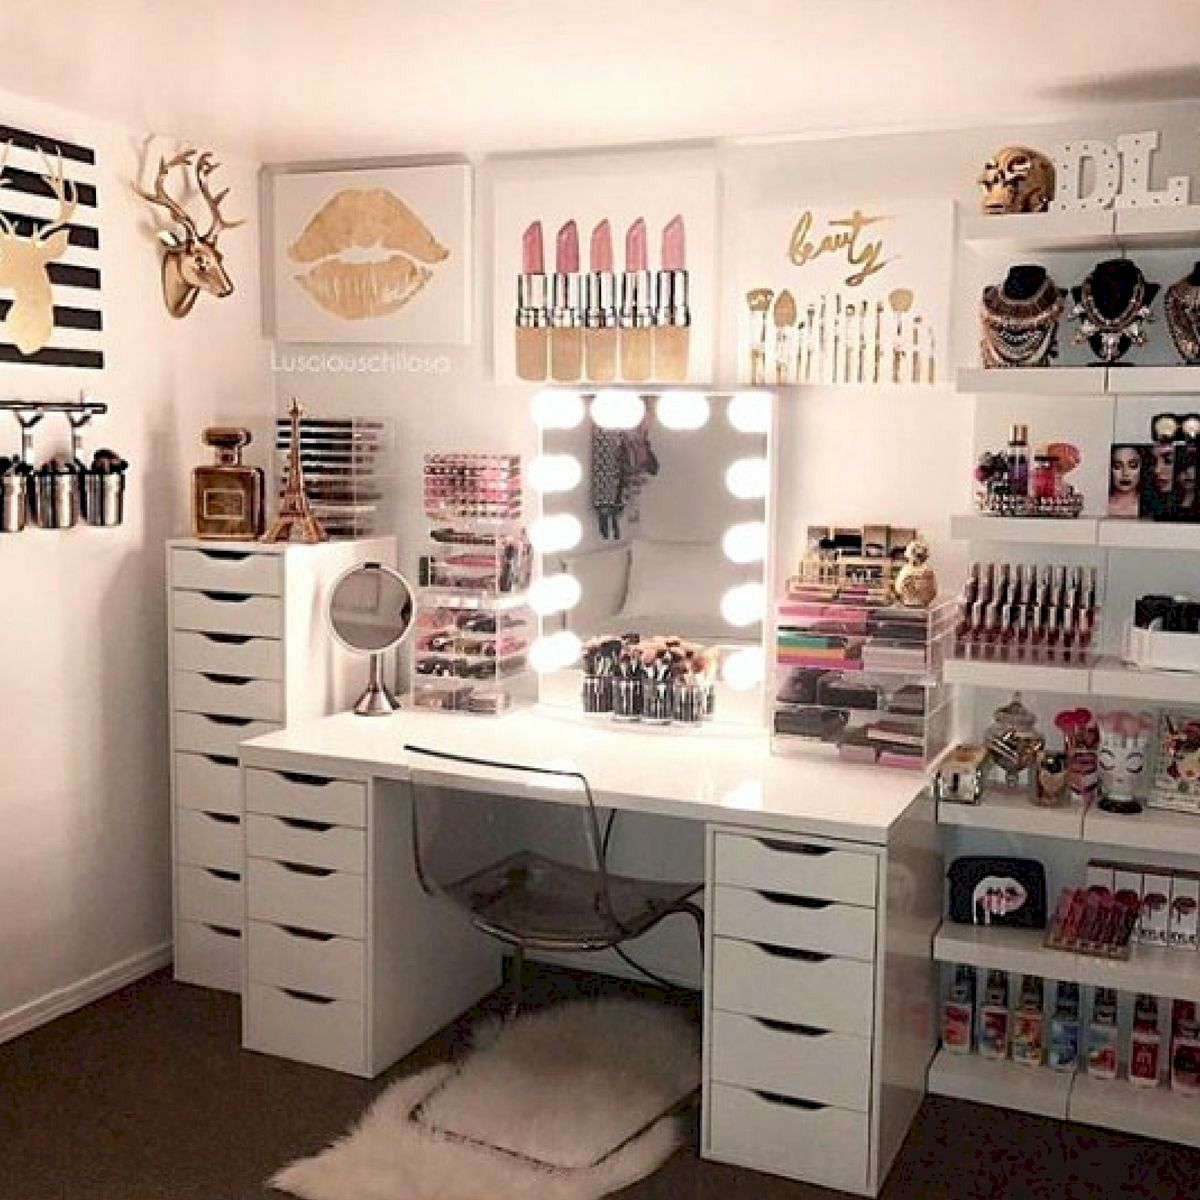 40 Beautiful Make Up Room Ideas in Your Bedroom (21)